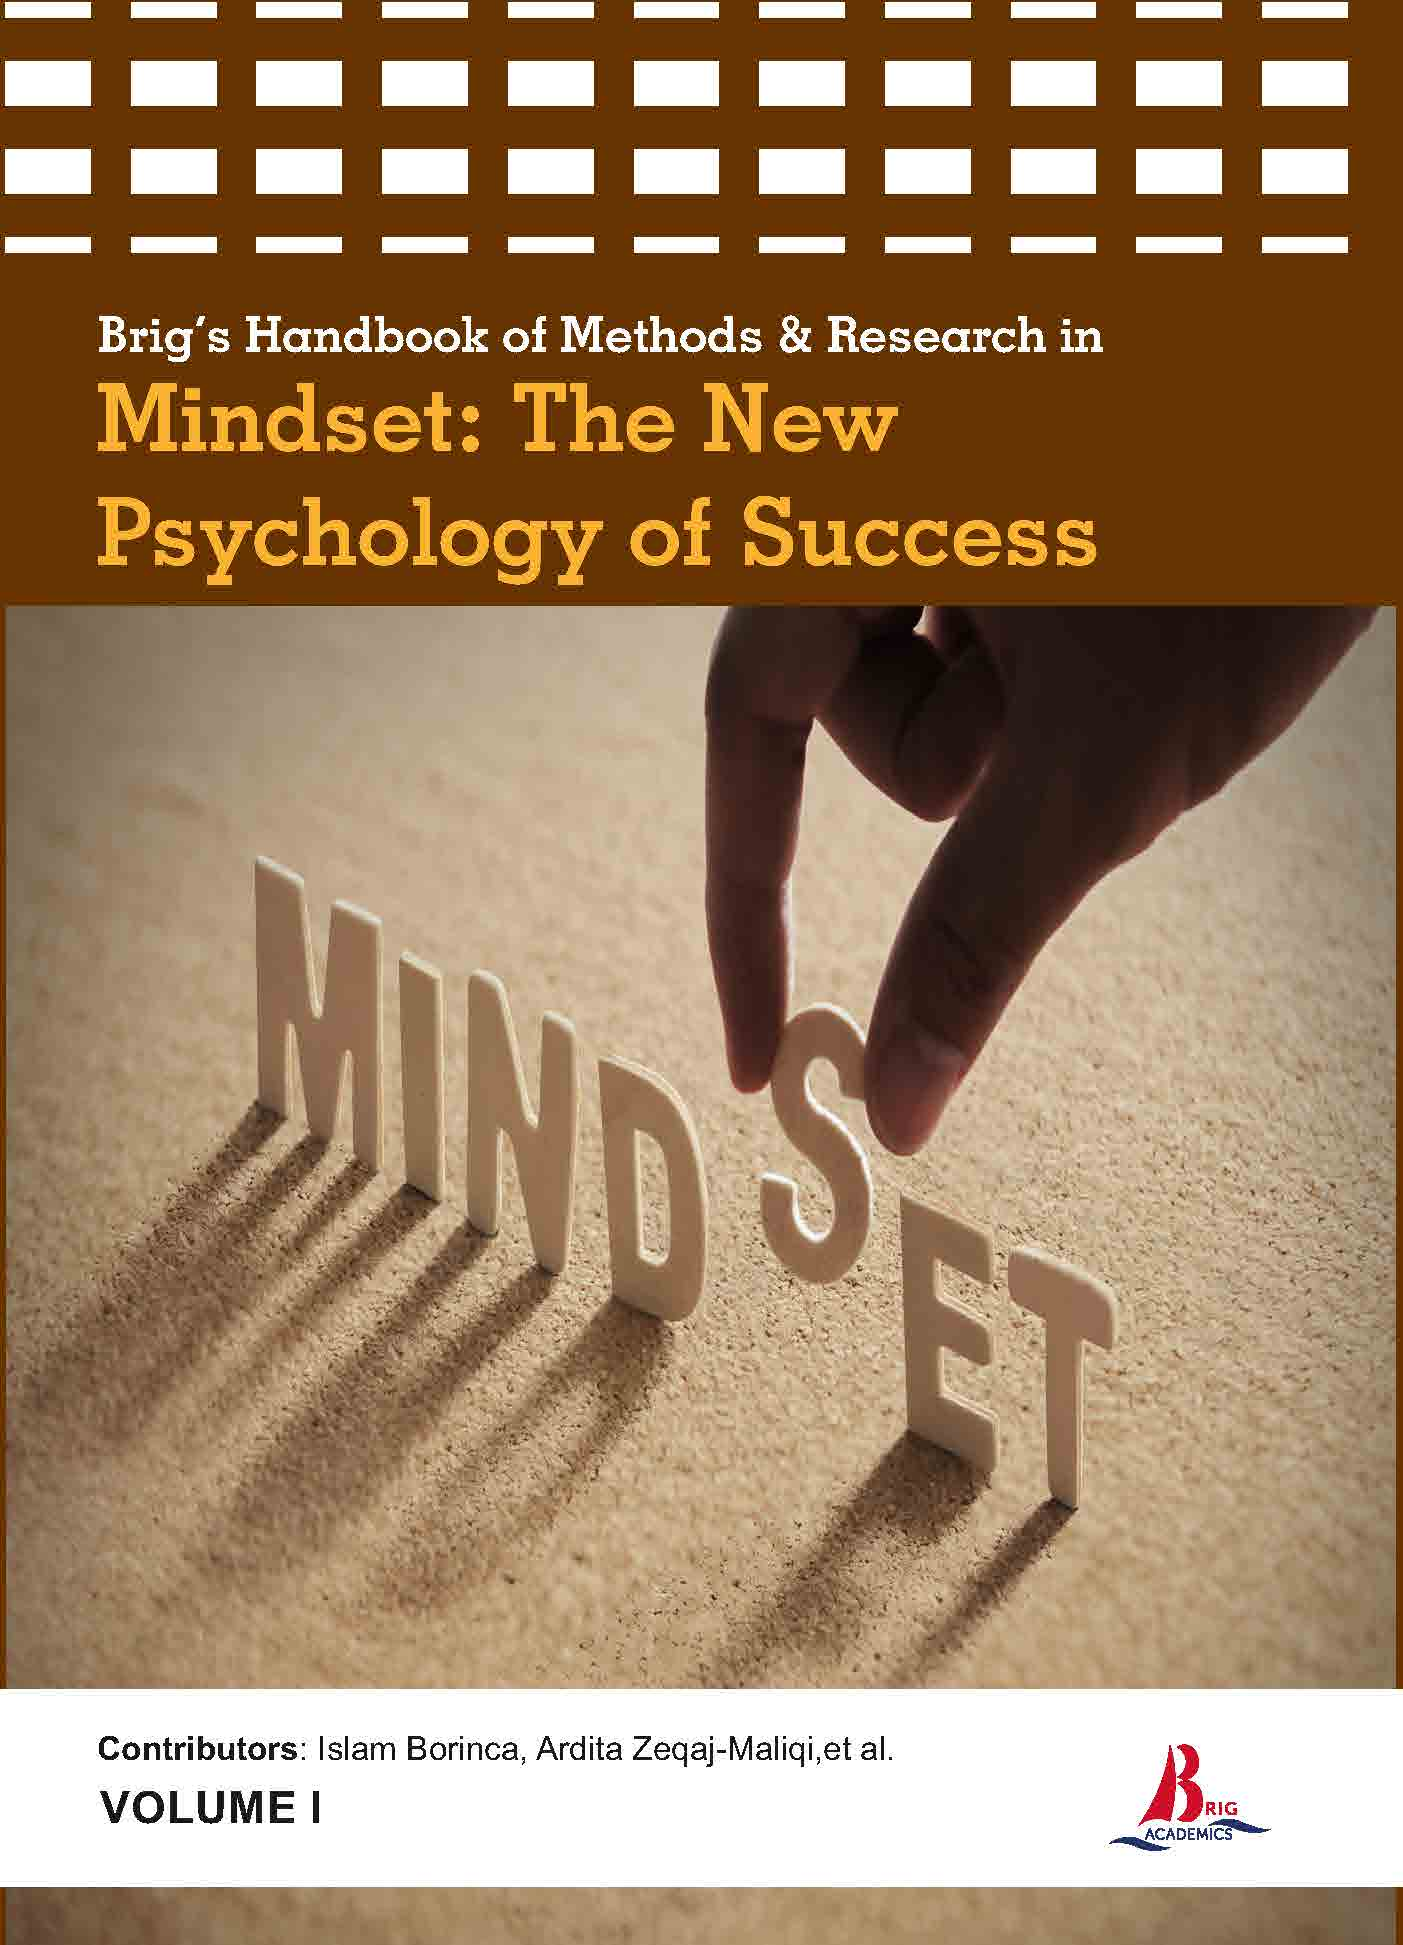 Brig's Handbook of Methods & Research in Mindset: The New Psychology of Success